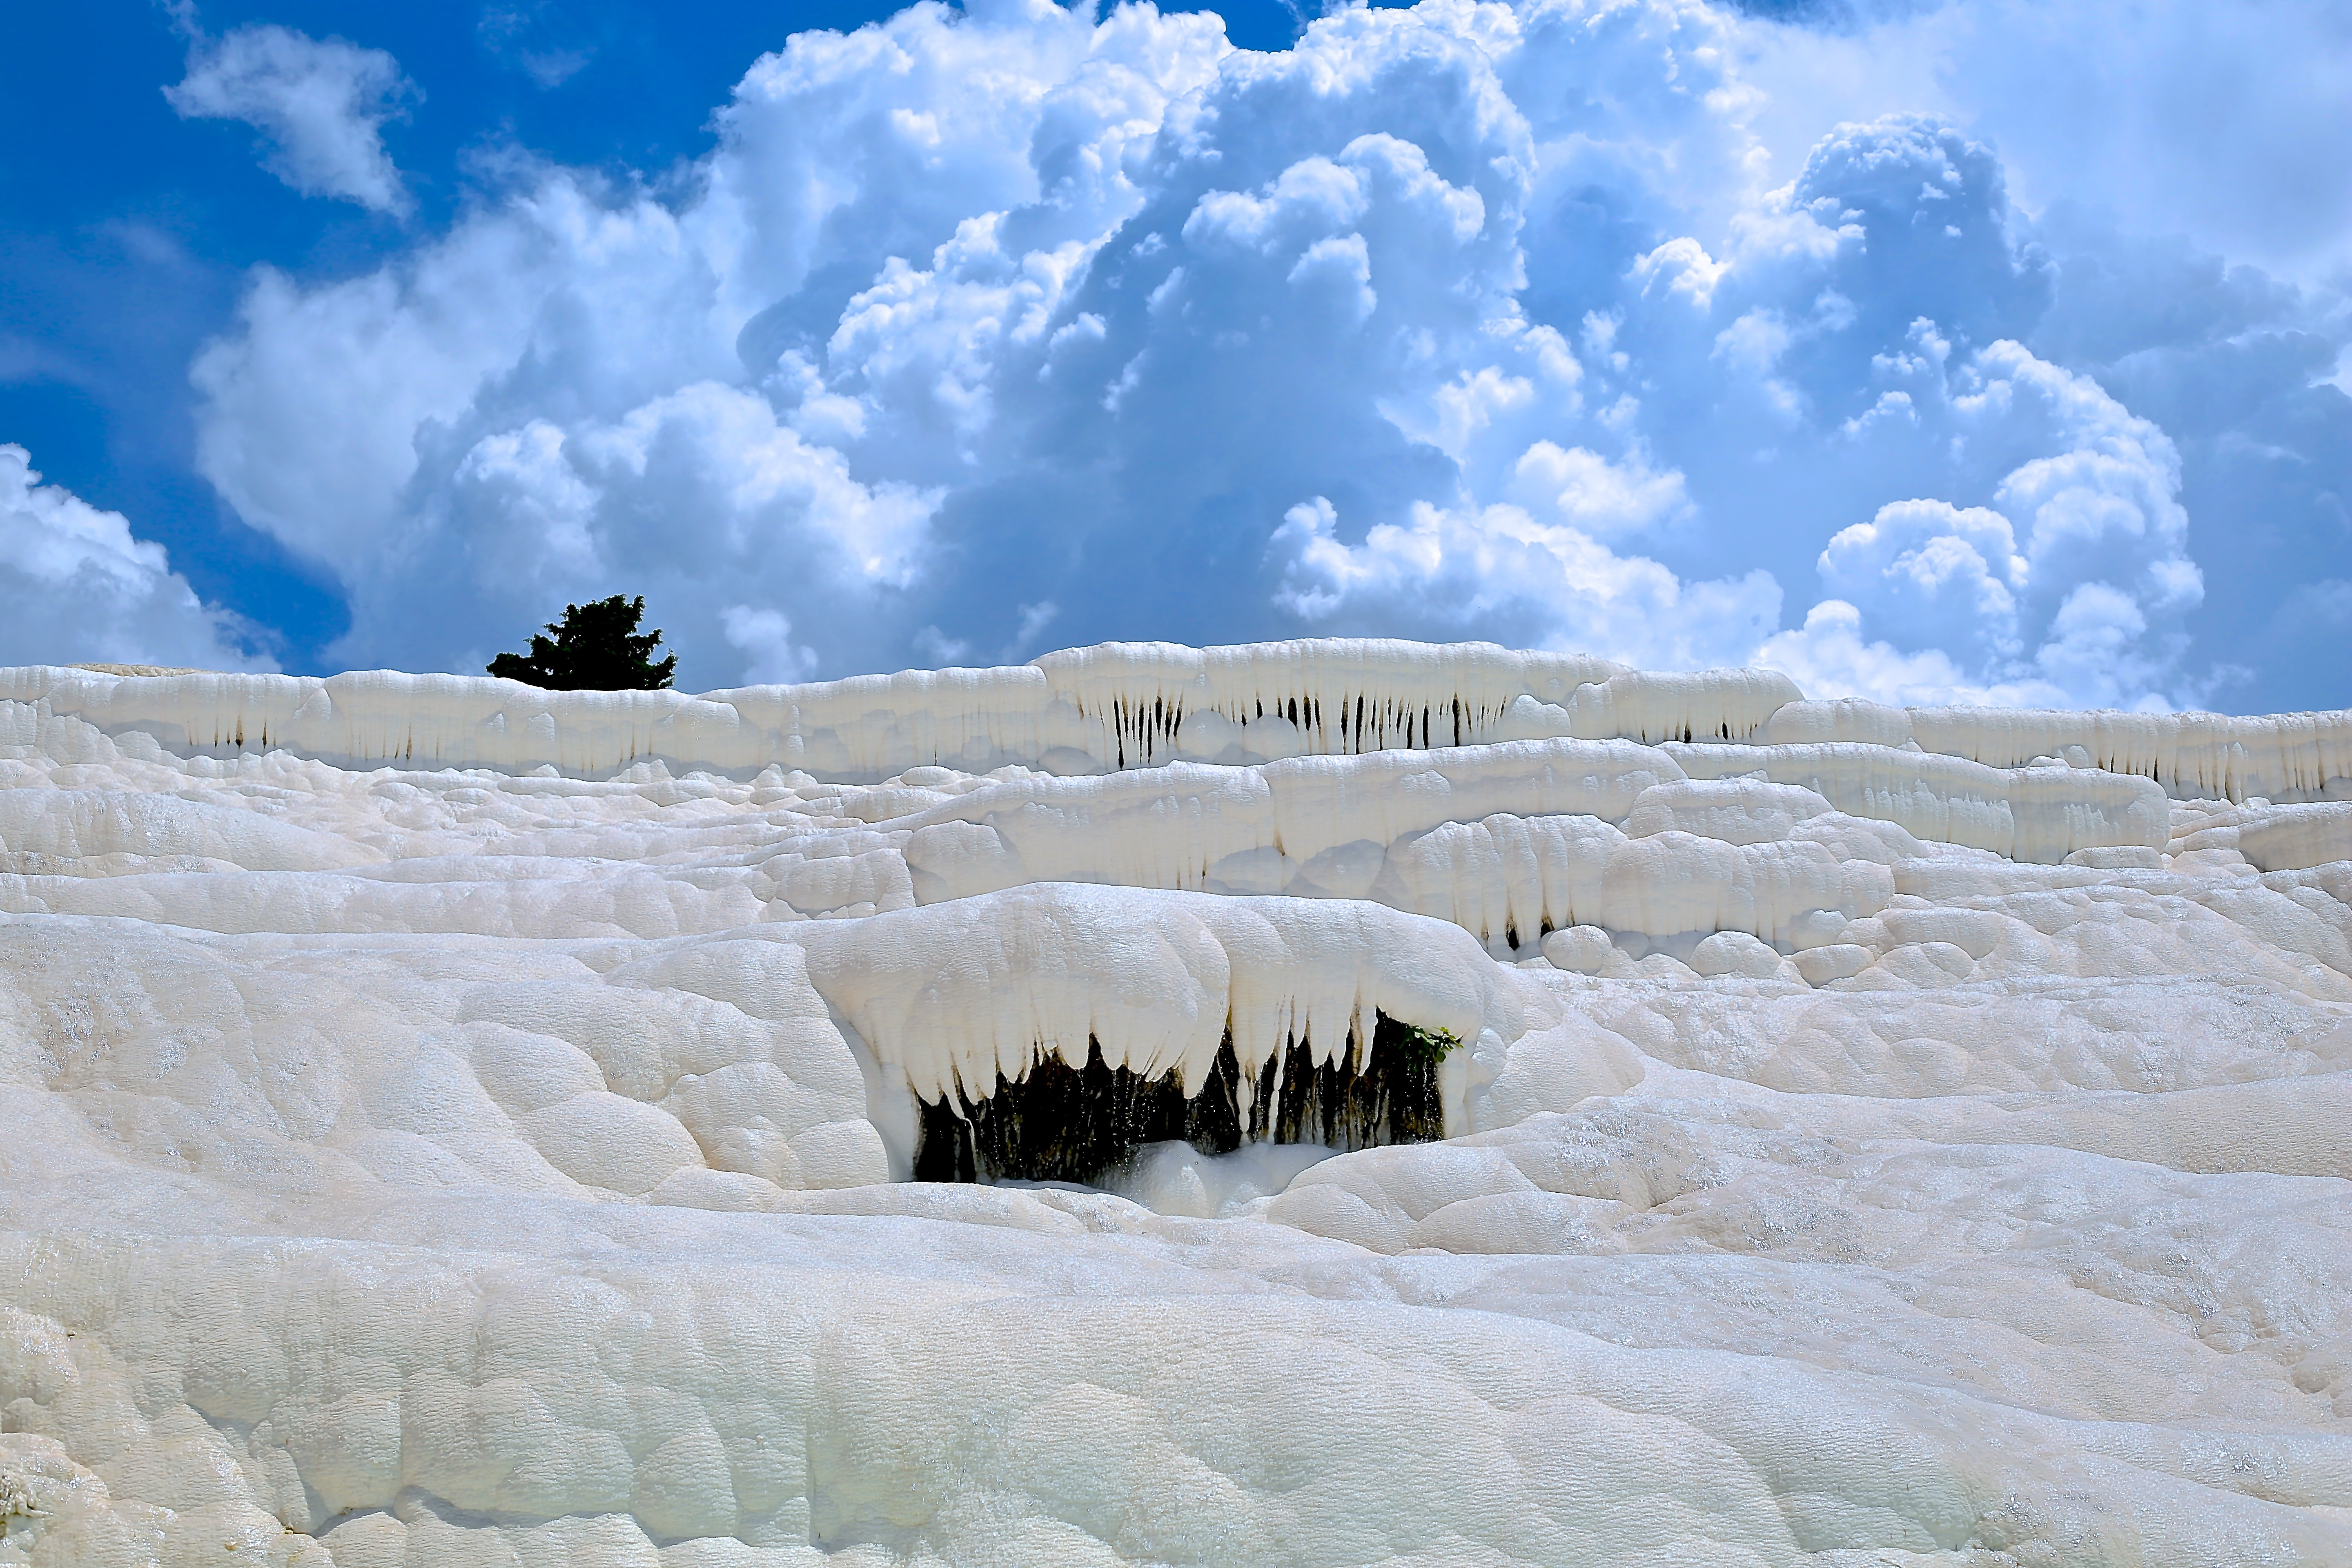 Layers of frozen snow touch blue sky filled with clouds in Hierapolis-Pamukkale